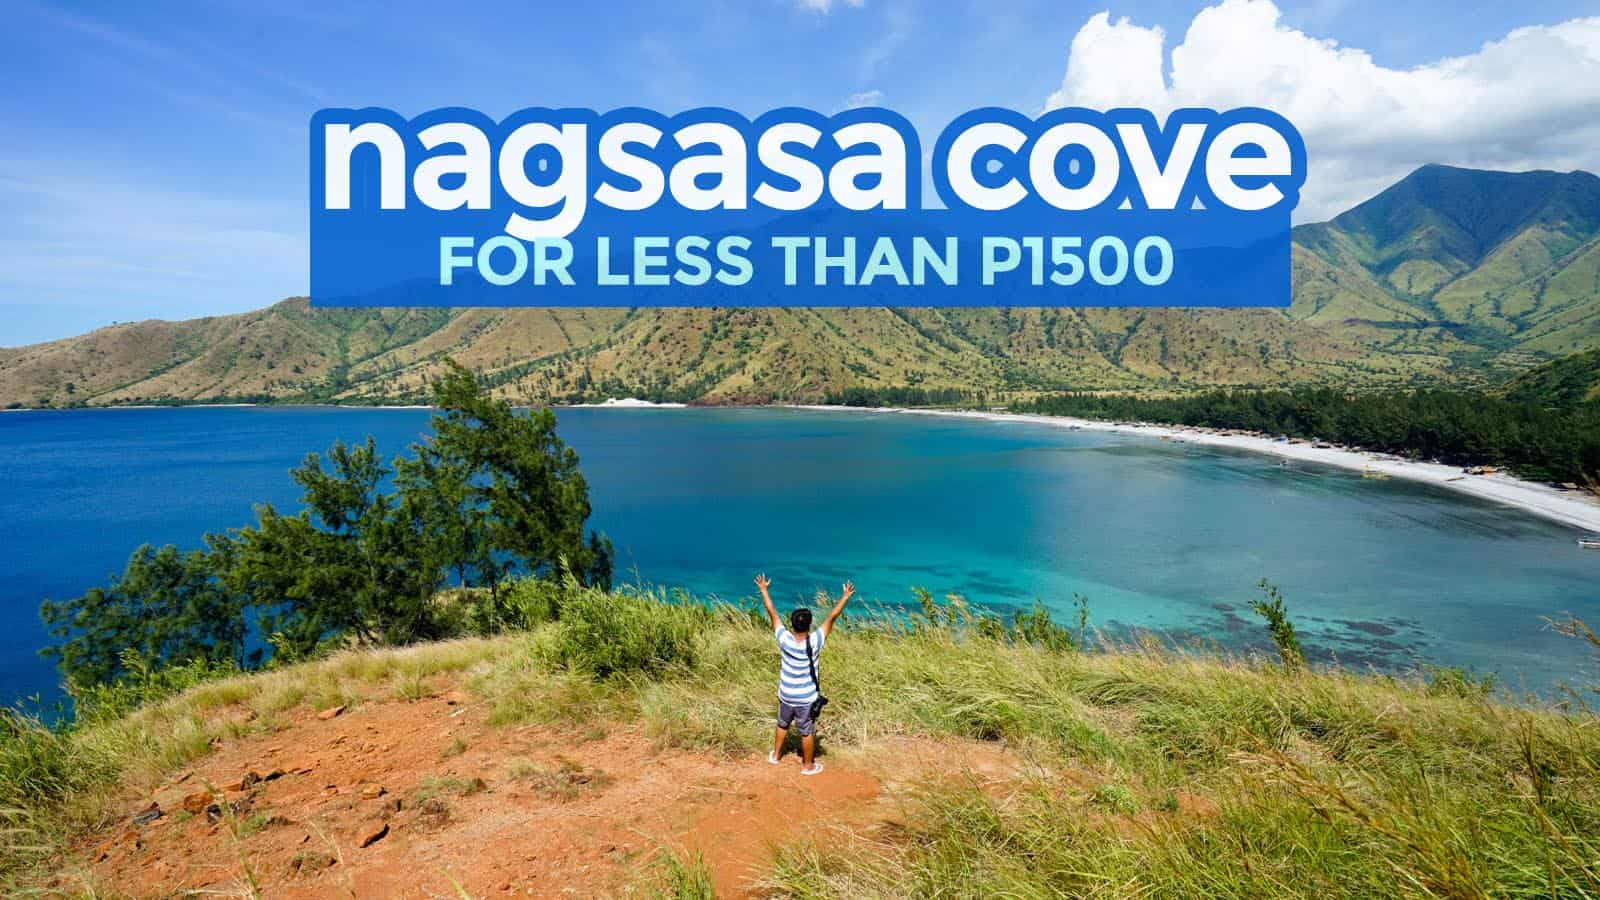 NAGSASA COVE ON A BUDGET 2018: Travel Guide & Itinerary